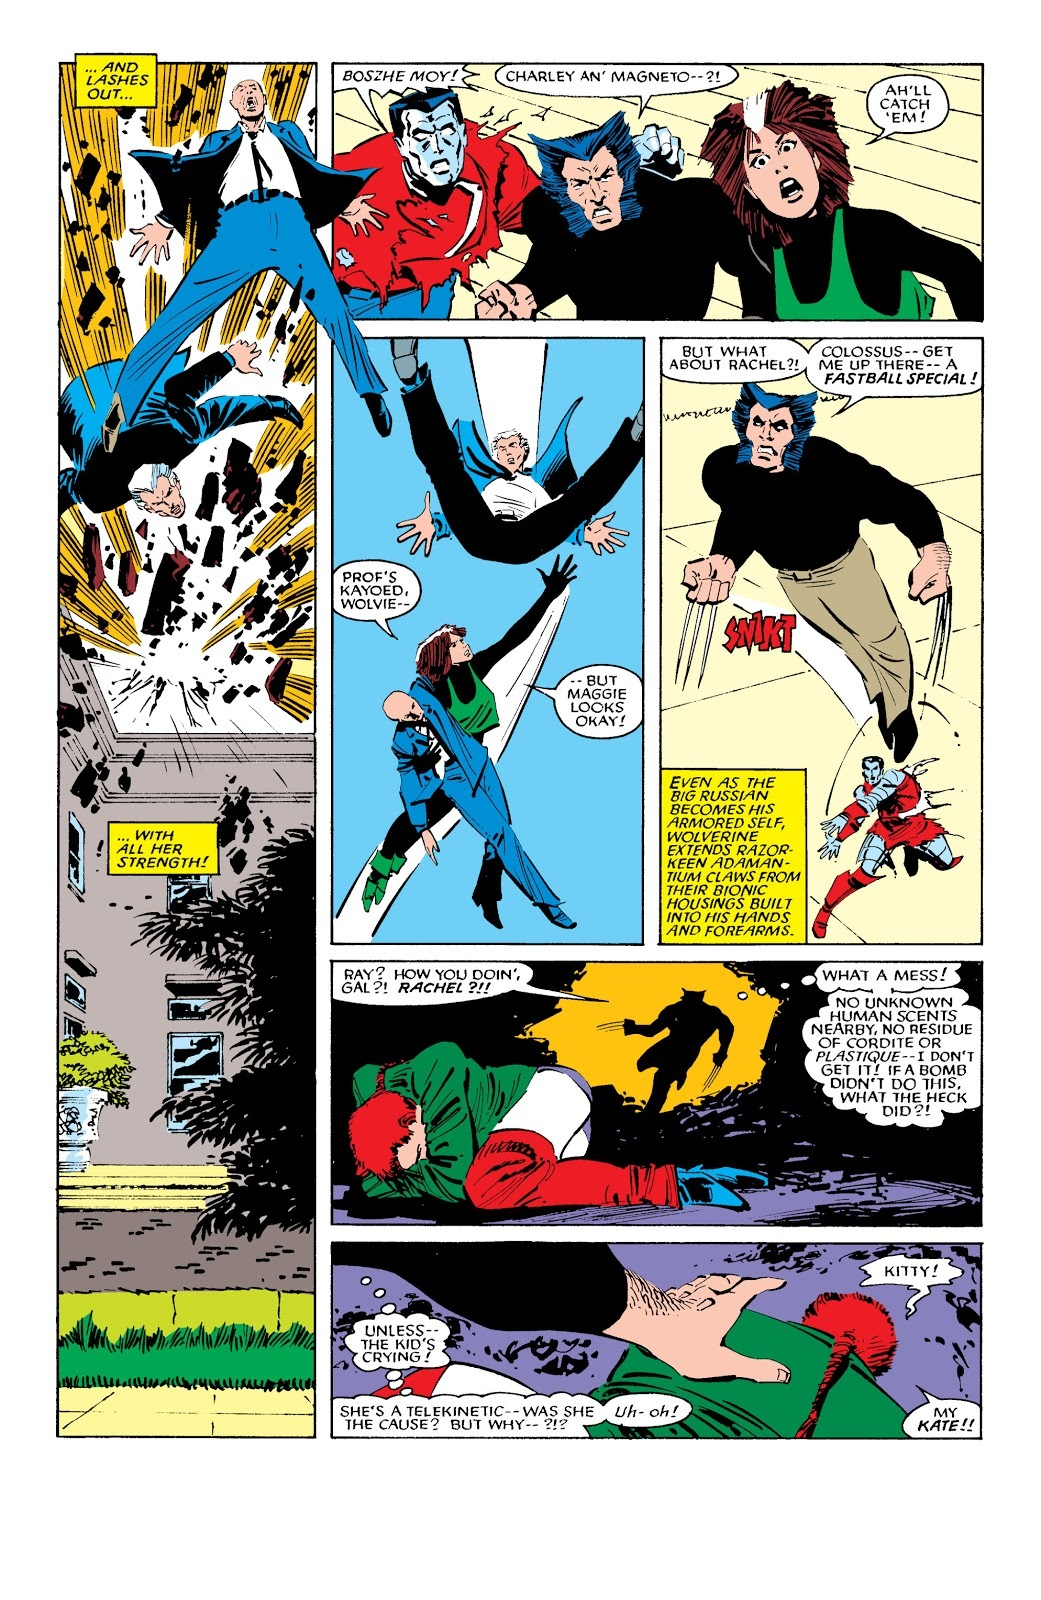 Young Rachel lashes out with TK after a psychic attack and destroy Xavier's office sending him and Magneto throught the roof and putting multiple holes in the room.